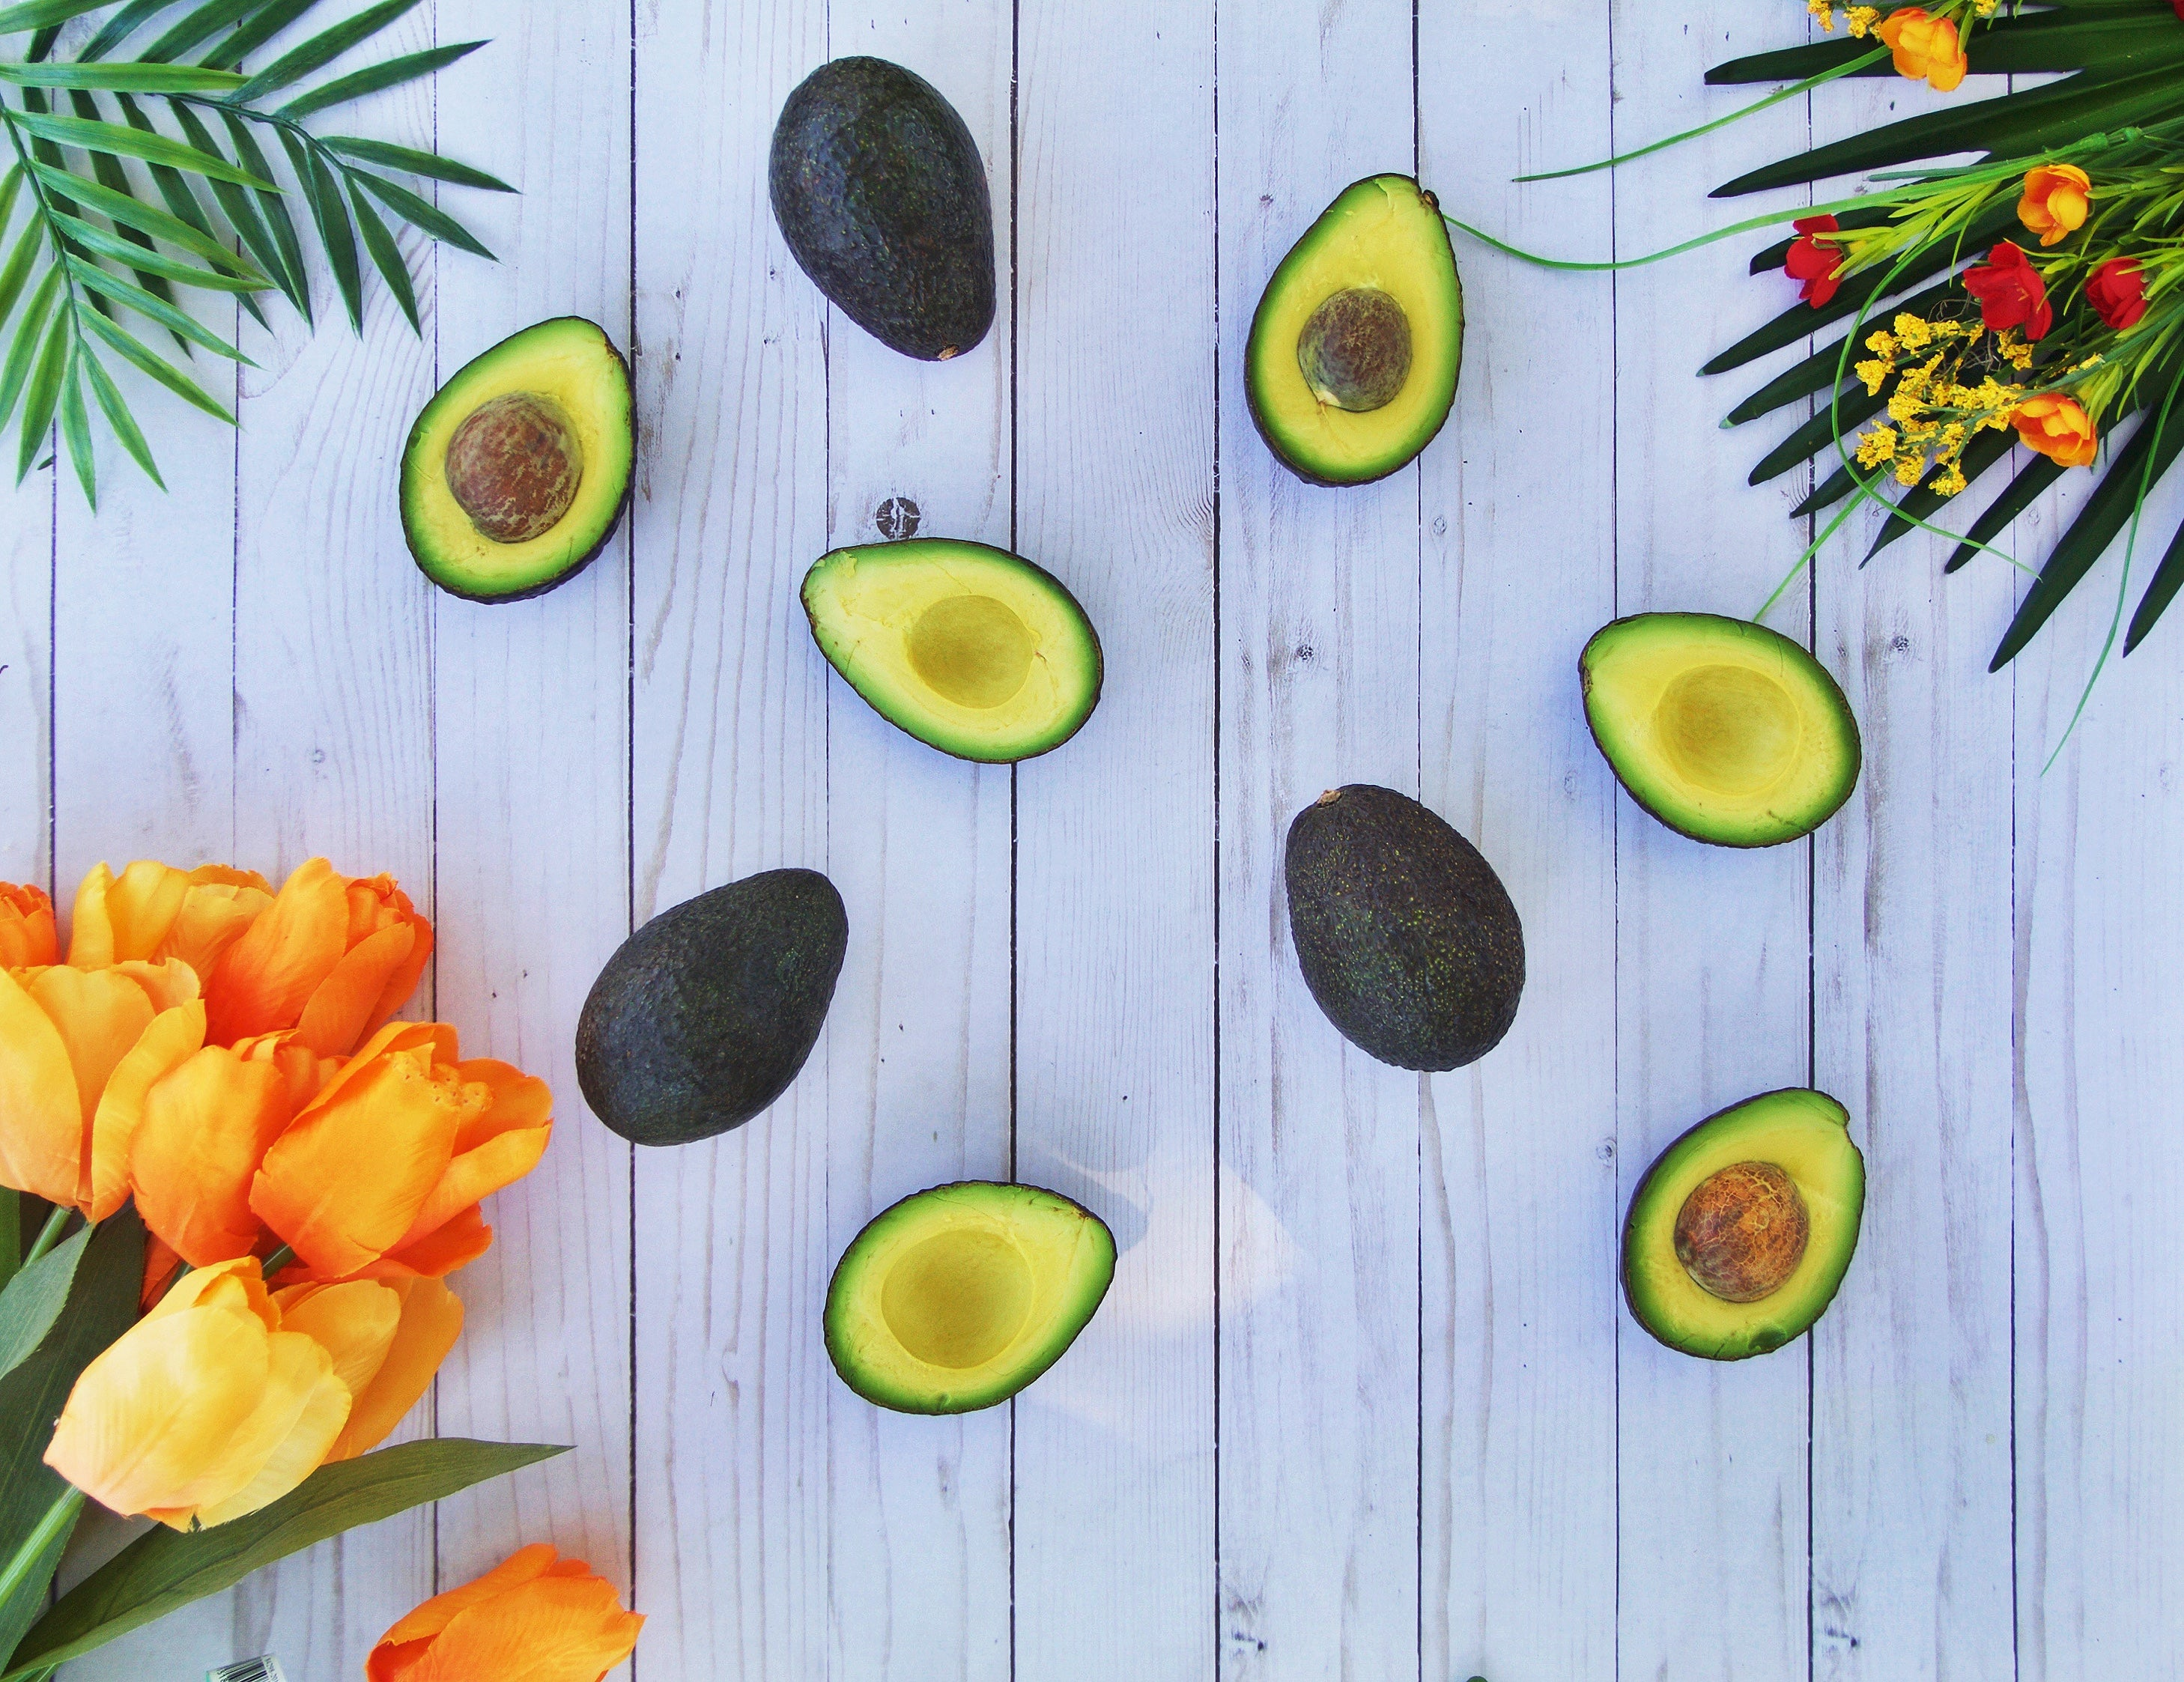 All the avo love! Happy National Avocado Day!